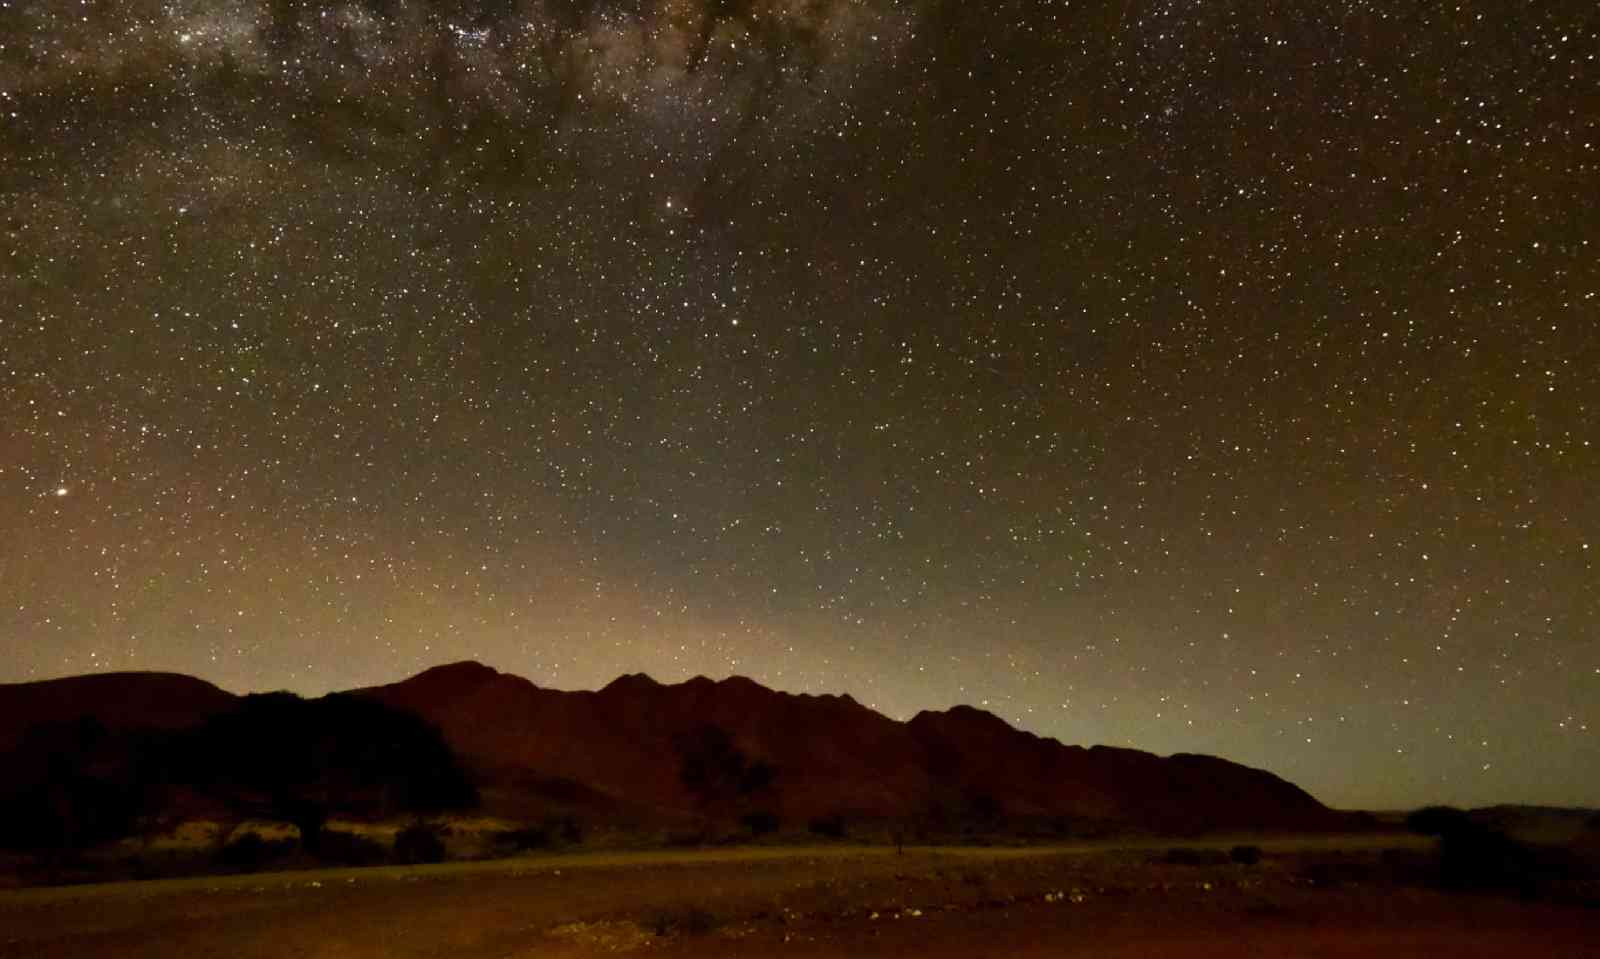 Starry night at NamibRand Nature Reserve (Dreamstime)